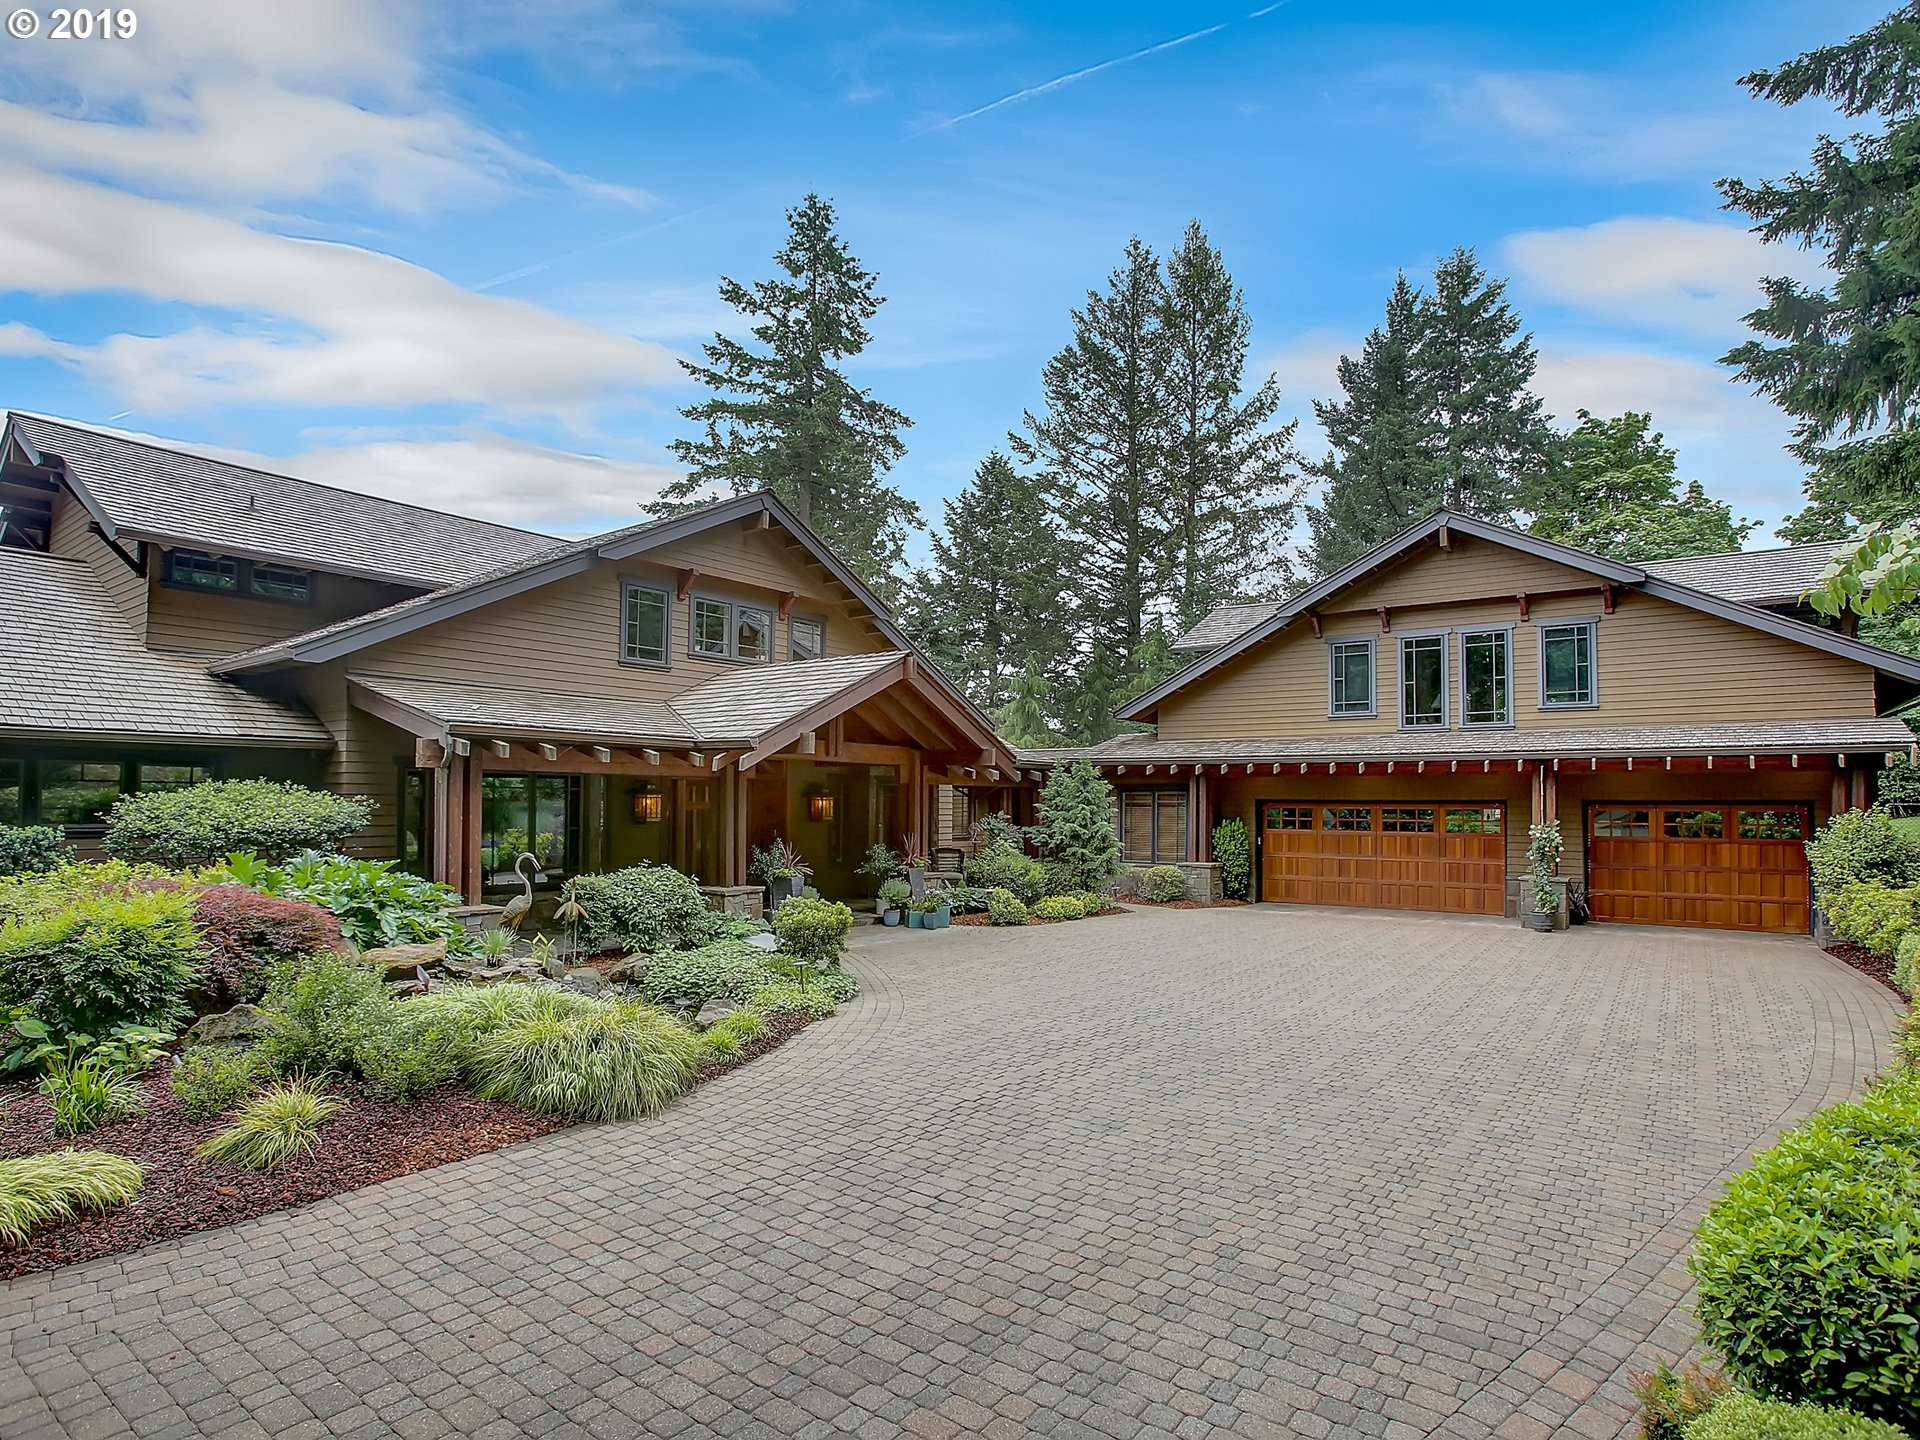 $2,499,000 - 5Br/5Ba -  for Sale in Quarryview At Stafford, Wilsonville